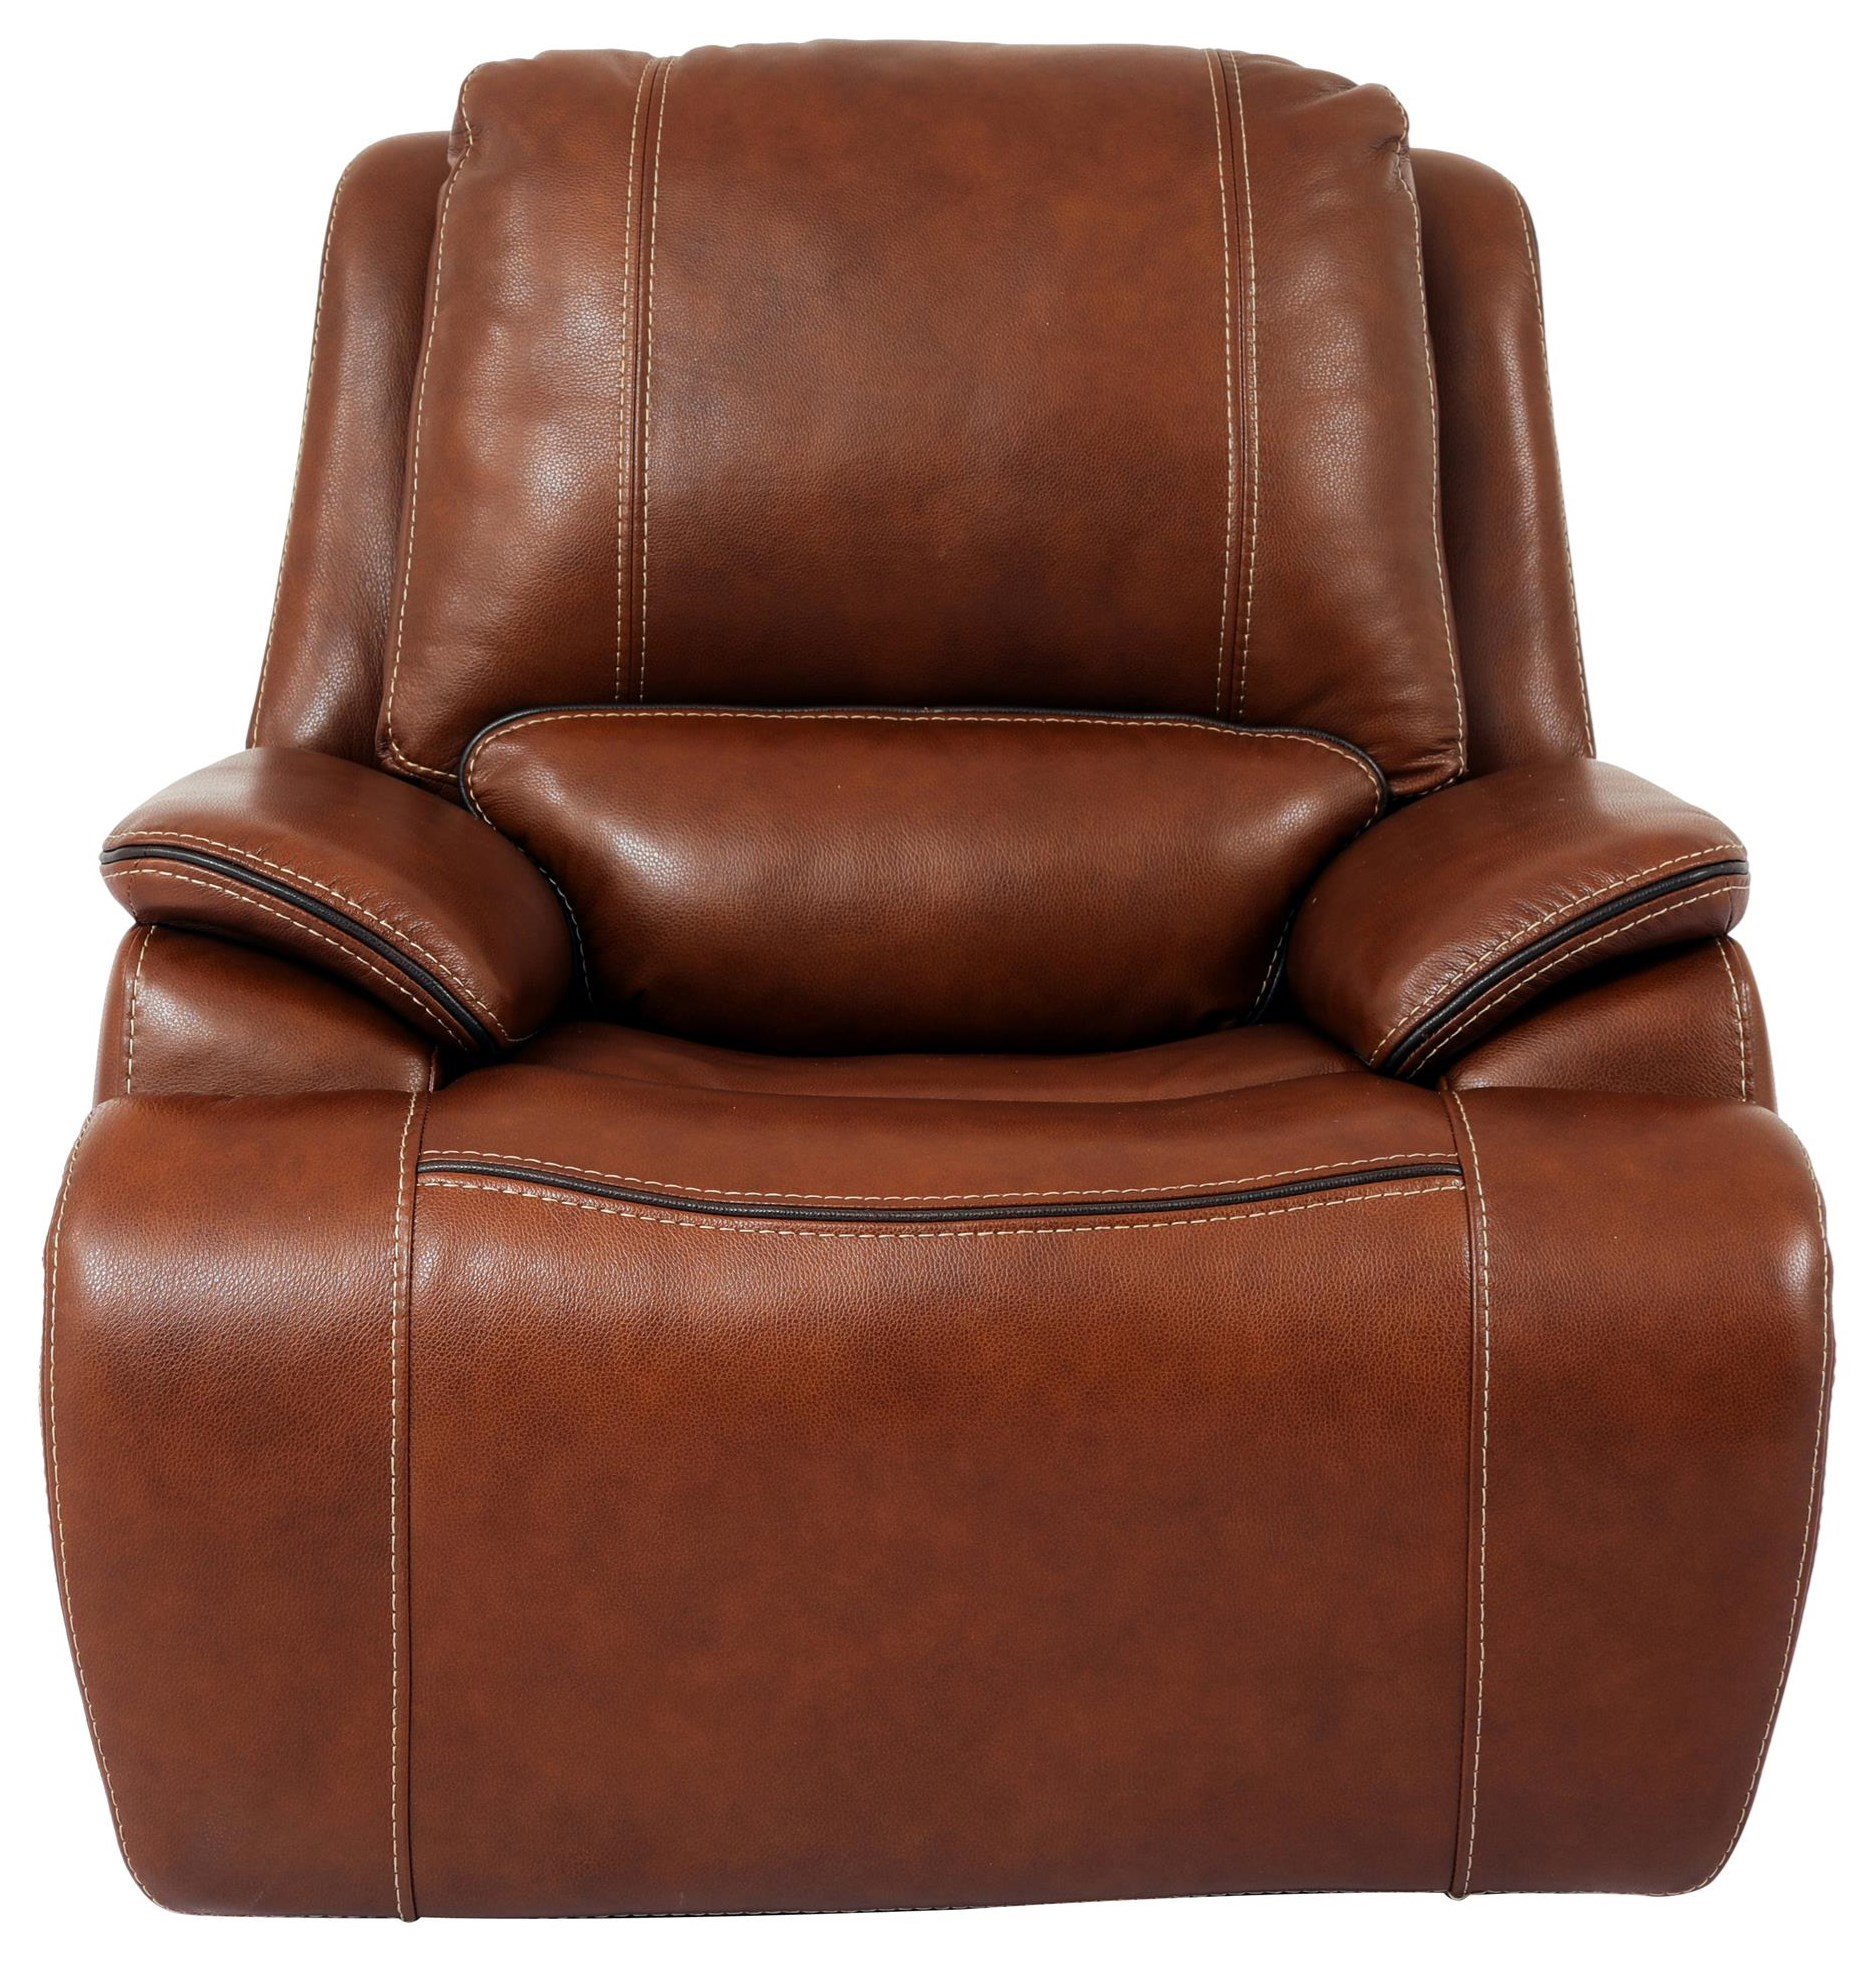 90019 Power recliner with power headrest by Cheers at Beck's Furniture